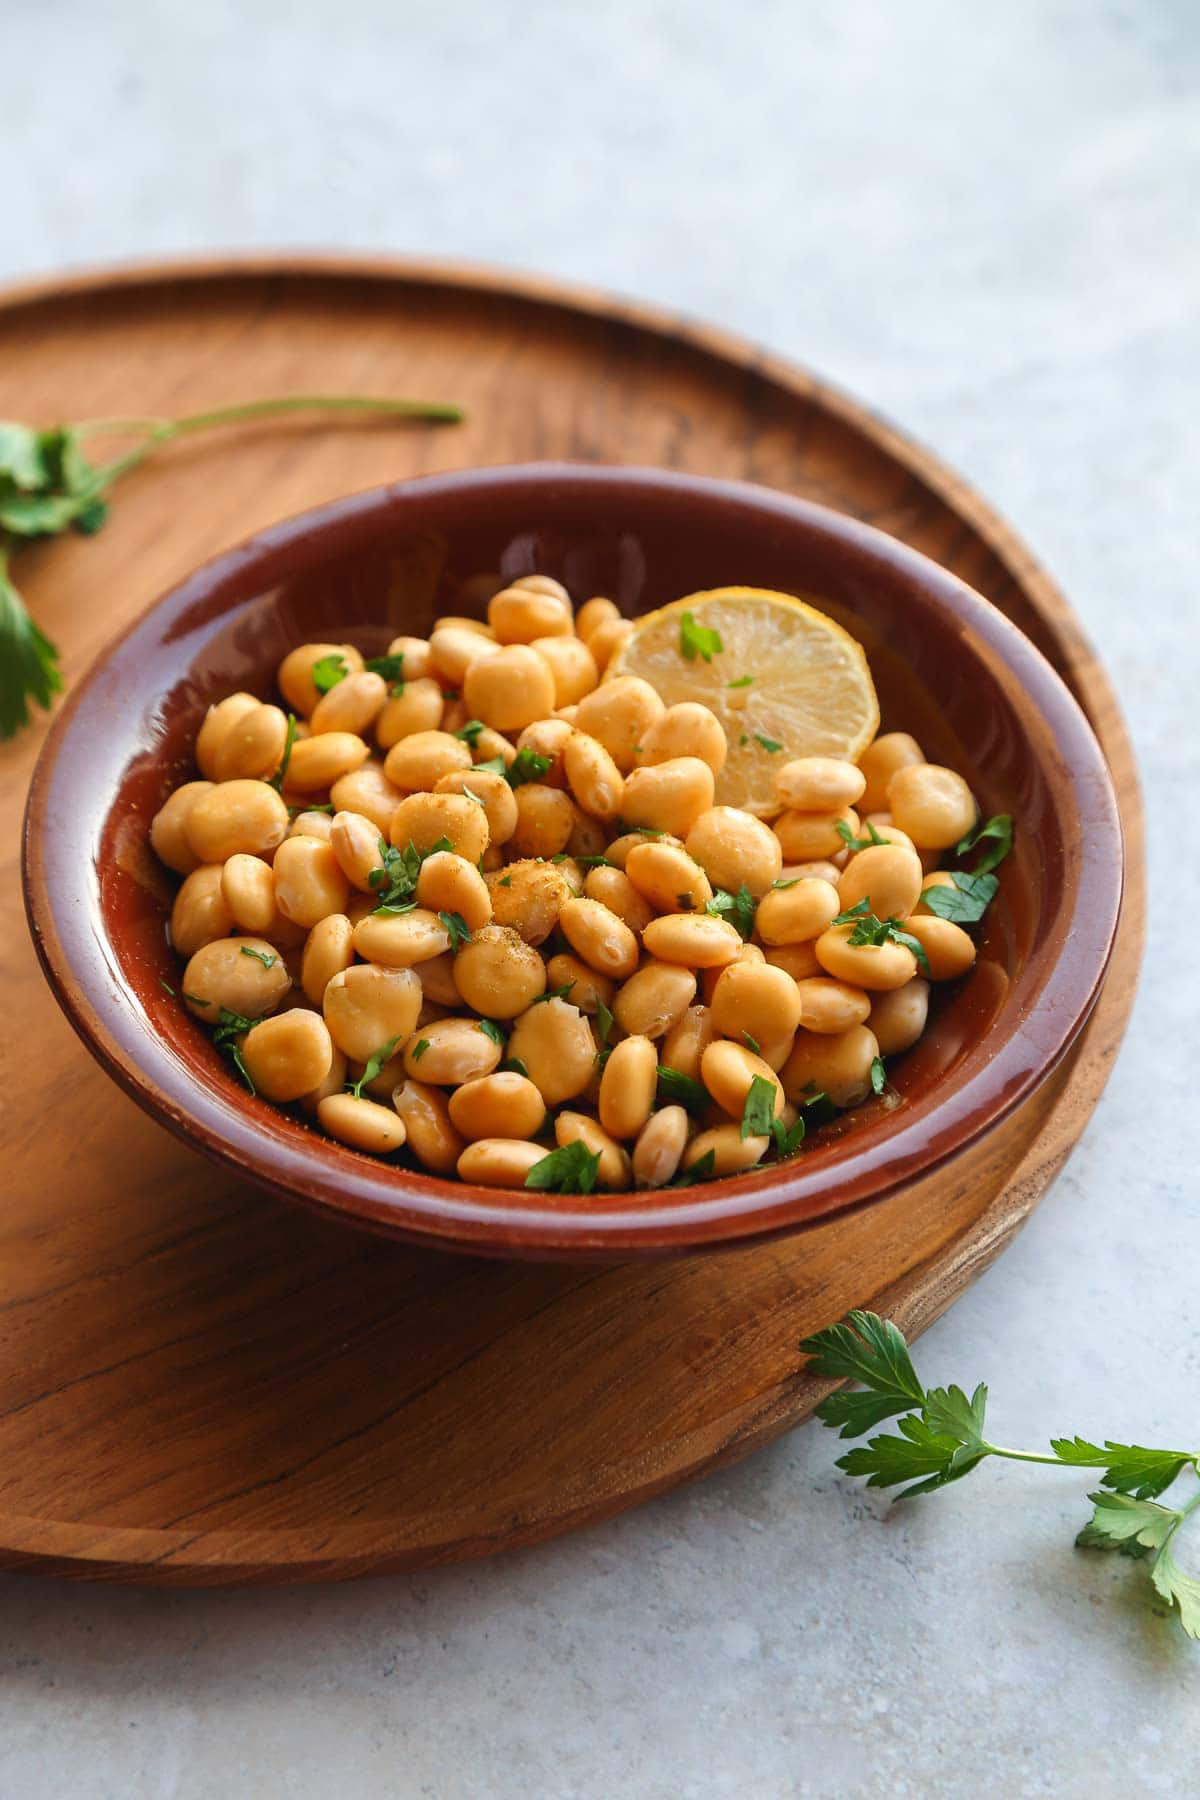 A bowl of lupini beans following a middle eastern recipe